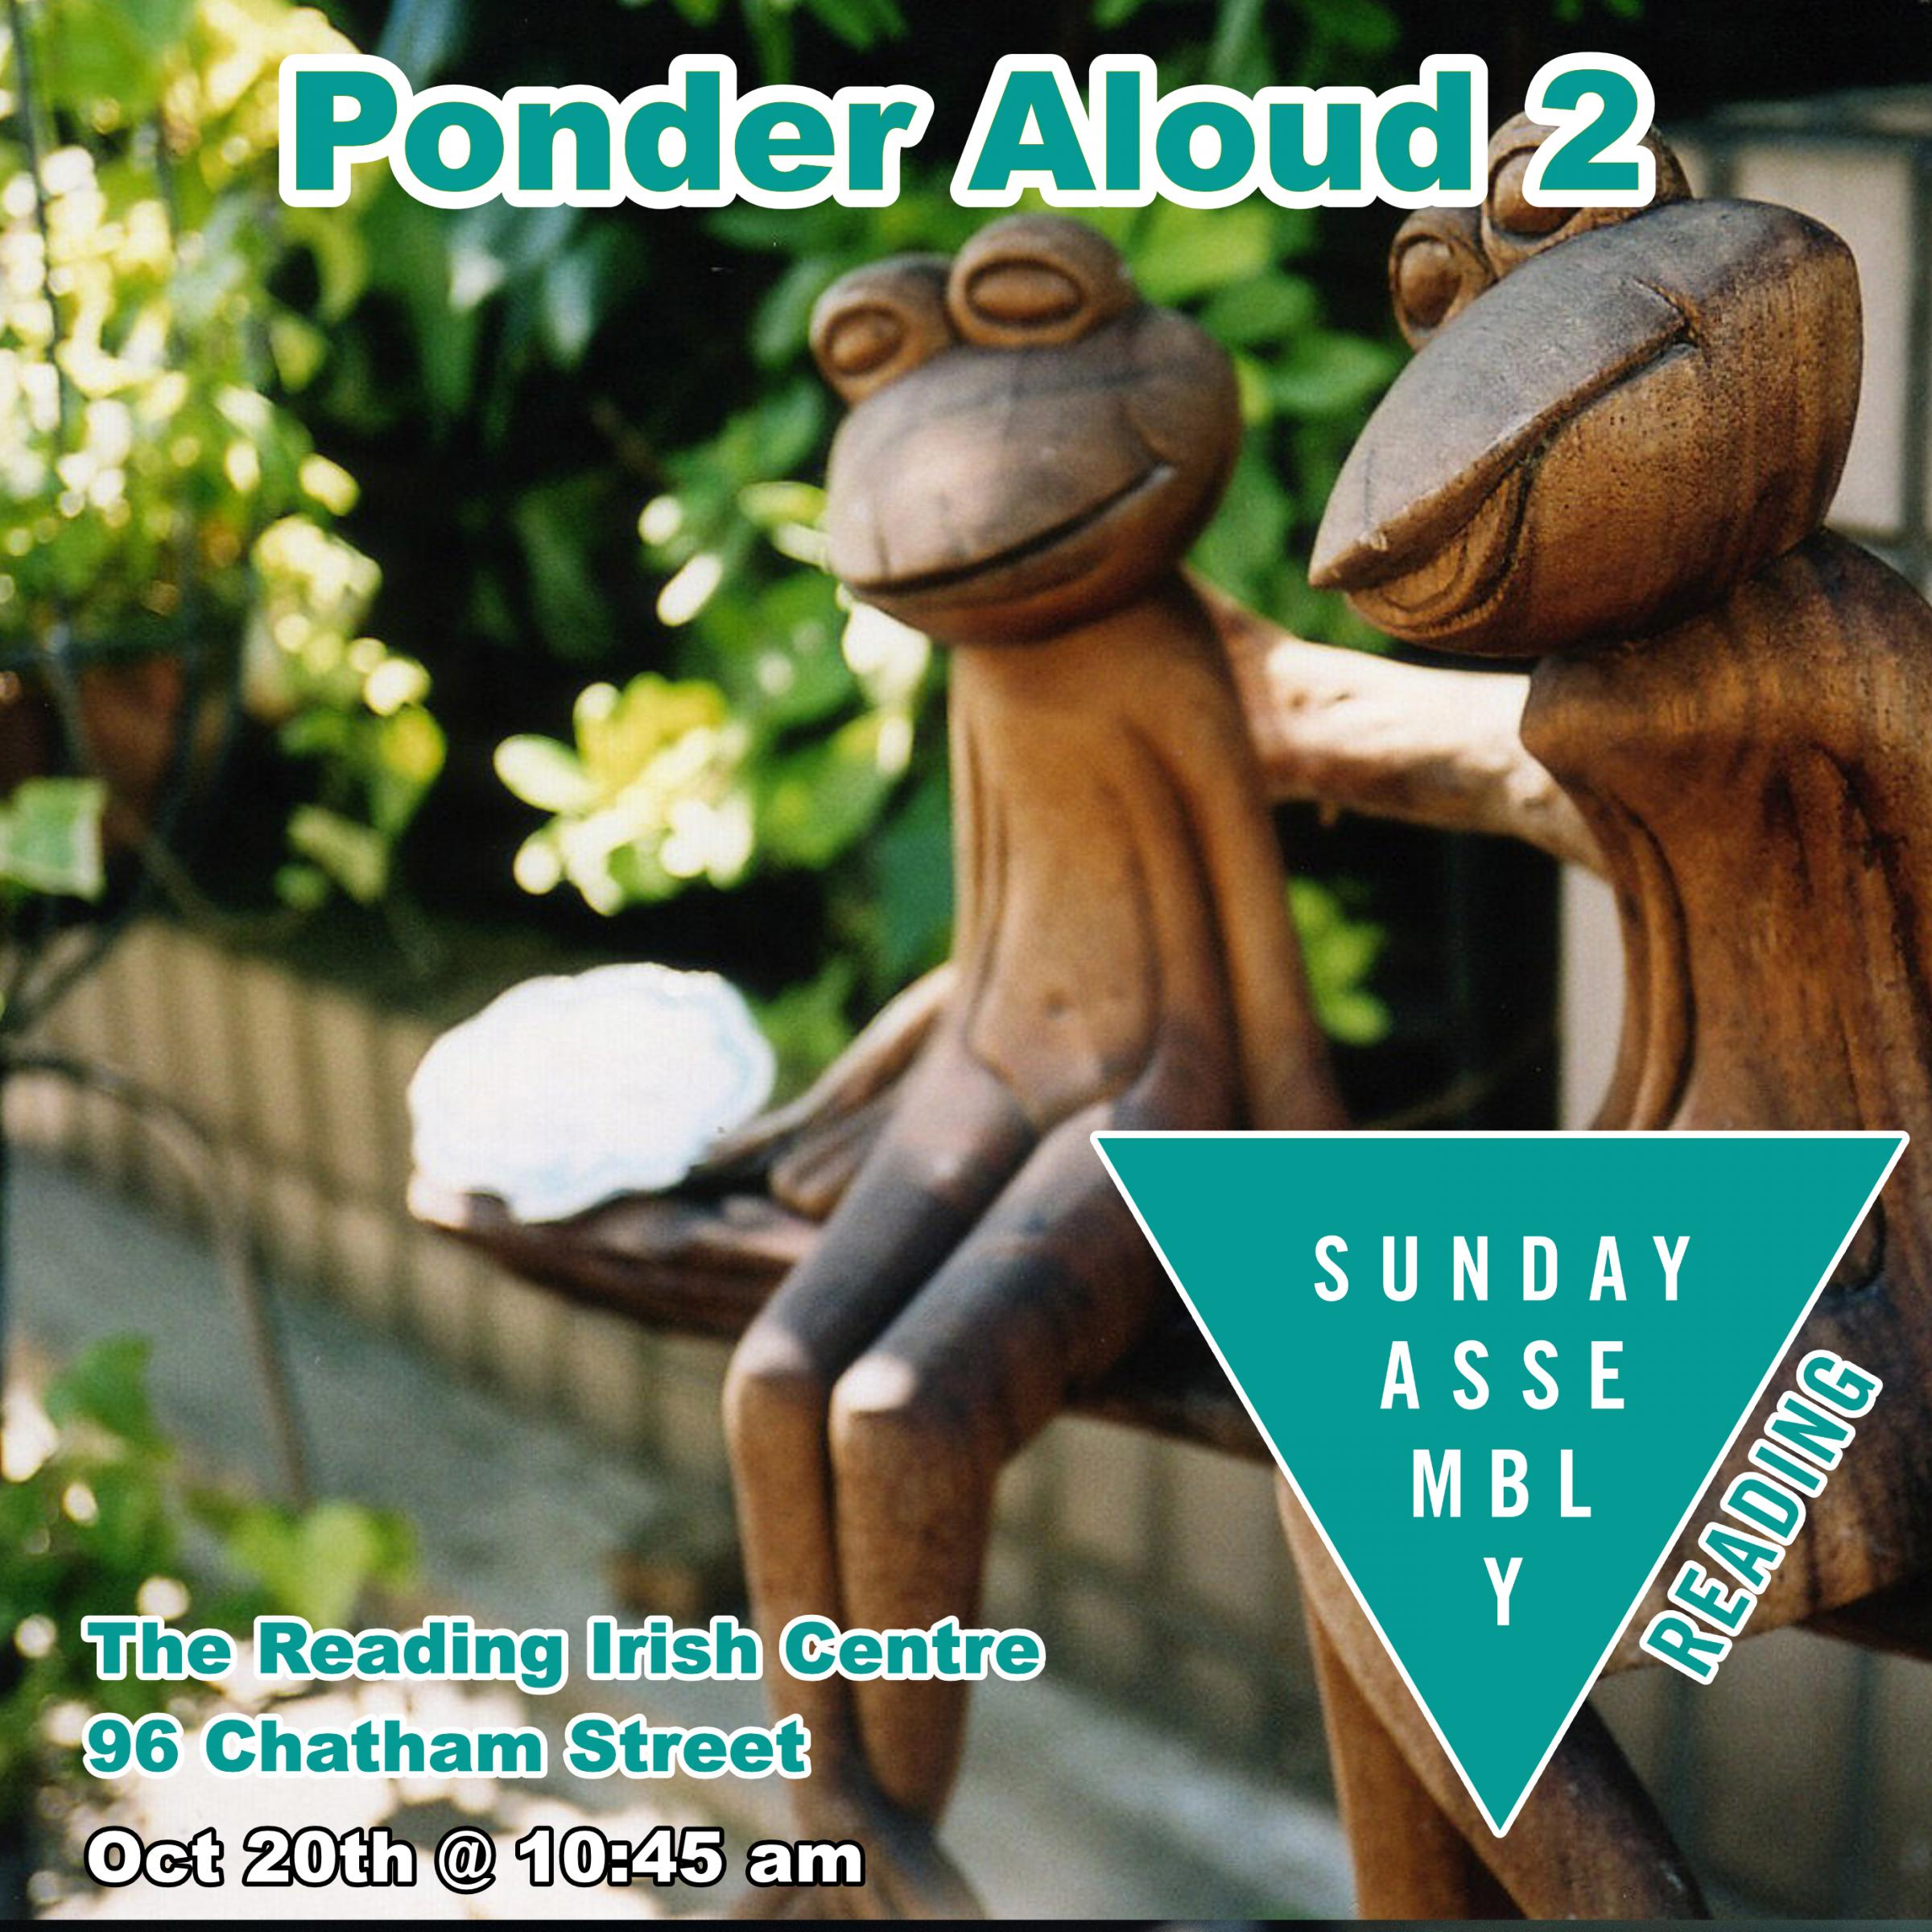 Sunday Assembly Reading - Ponder Aloud 2